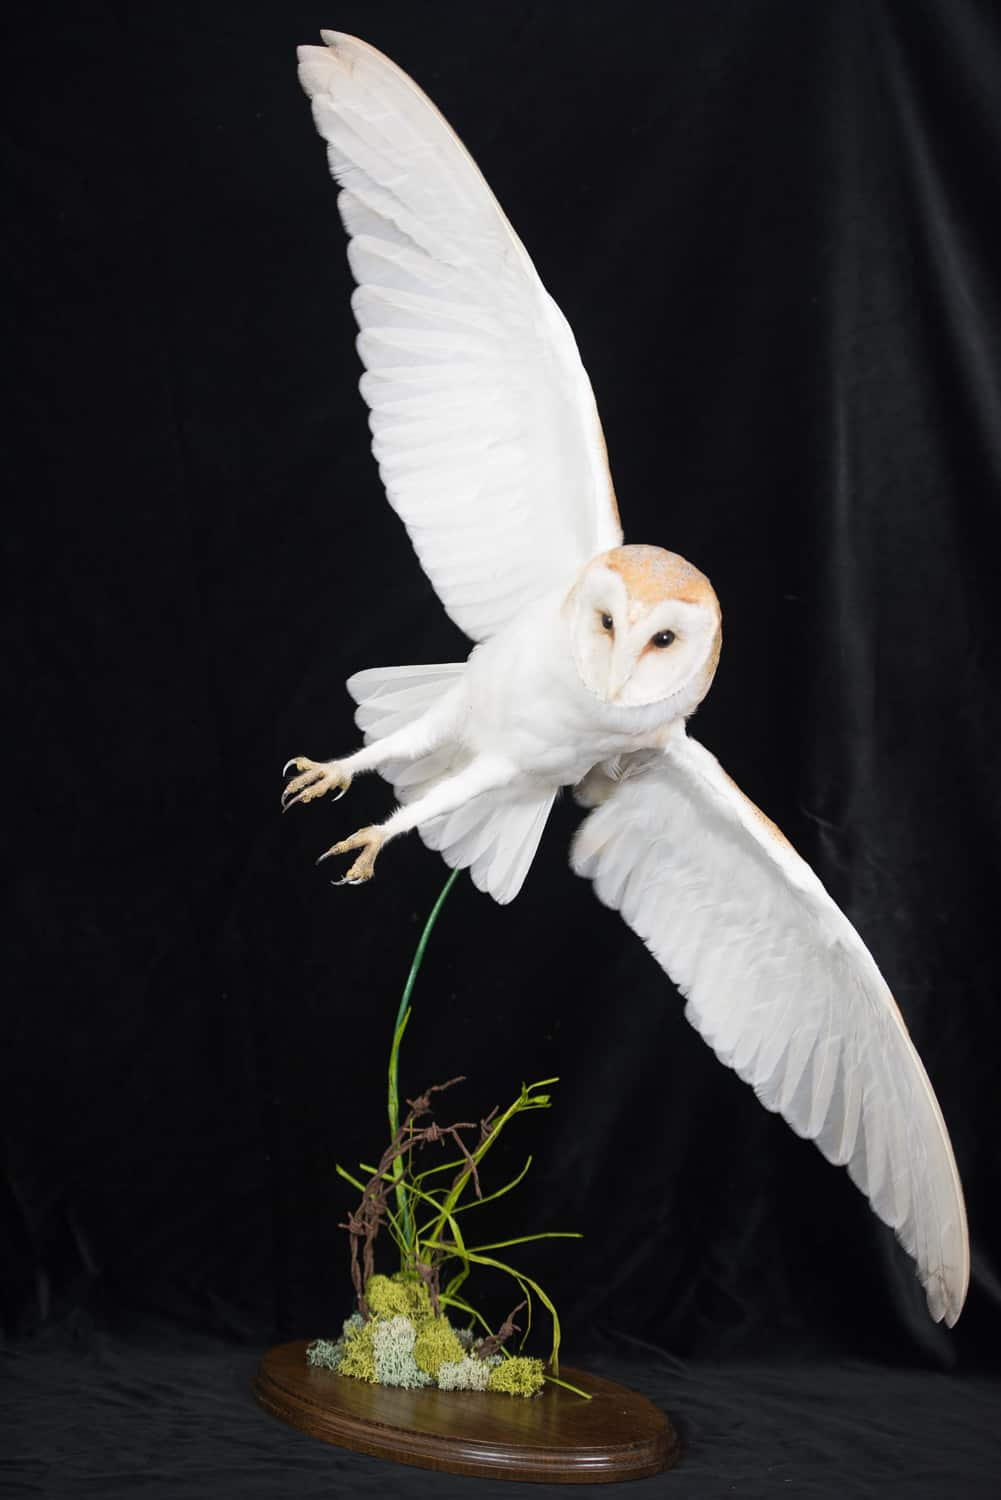 Exotic Birds For Sale >> Barn Owl in Flying Pose | UK Bird Small Mammal Taxidermist Mike Gadd